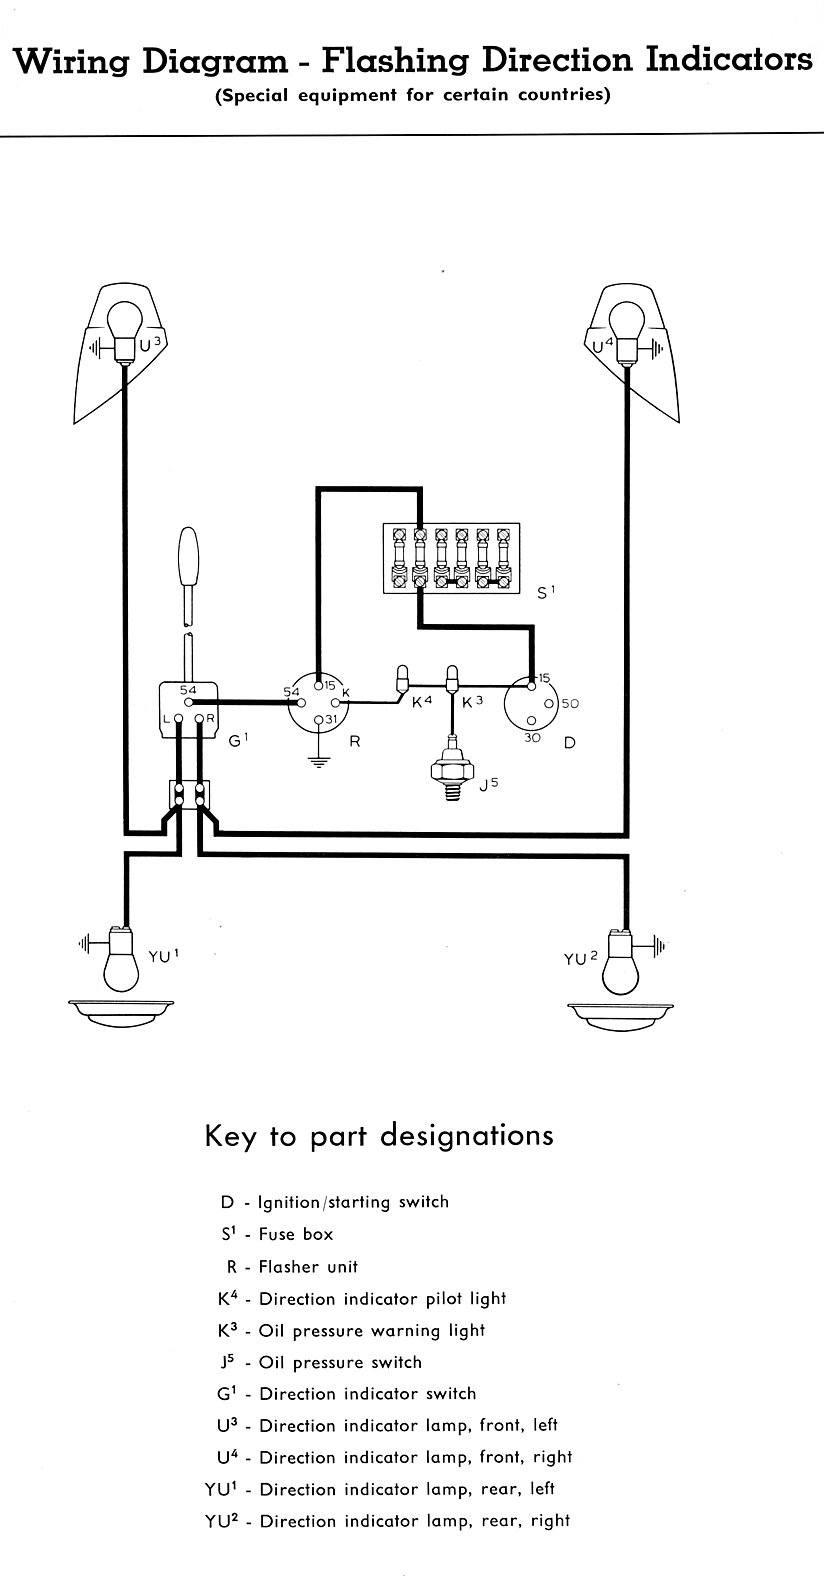 Type 2 Wiring Diagrams Panel From Chevy Tail Light Diagram Lights Fuse To 1975 Turn Signal